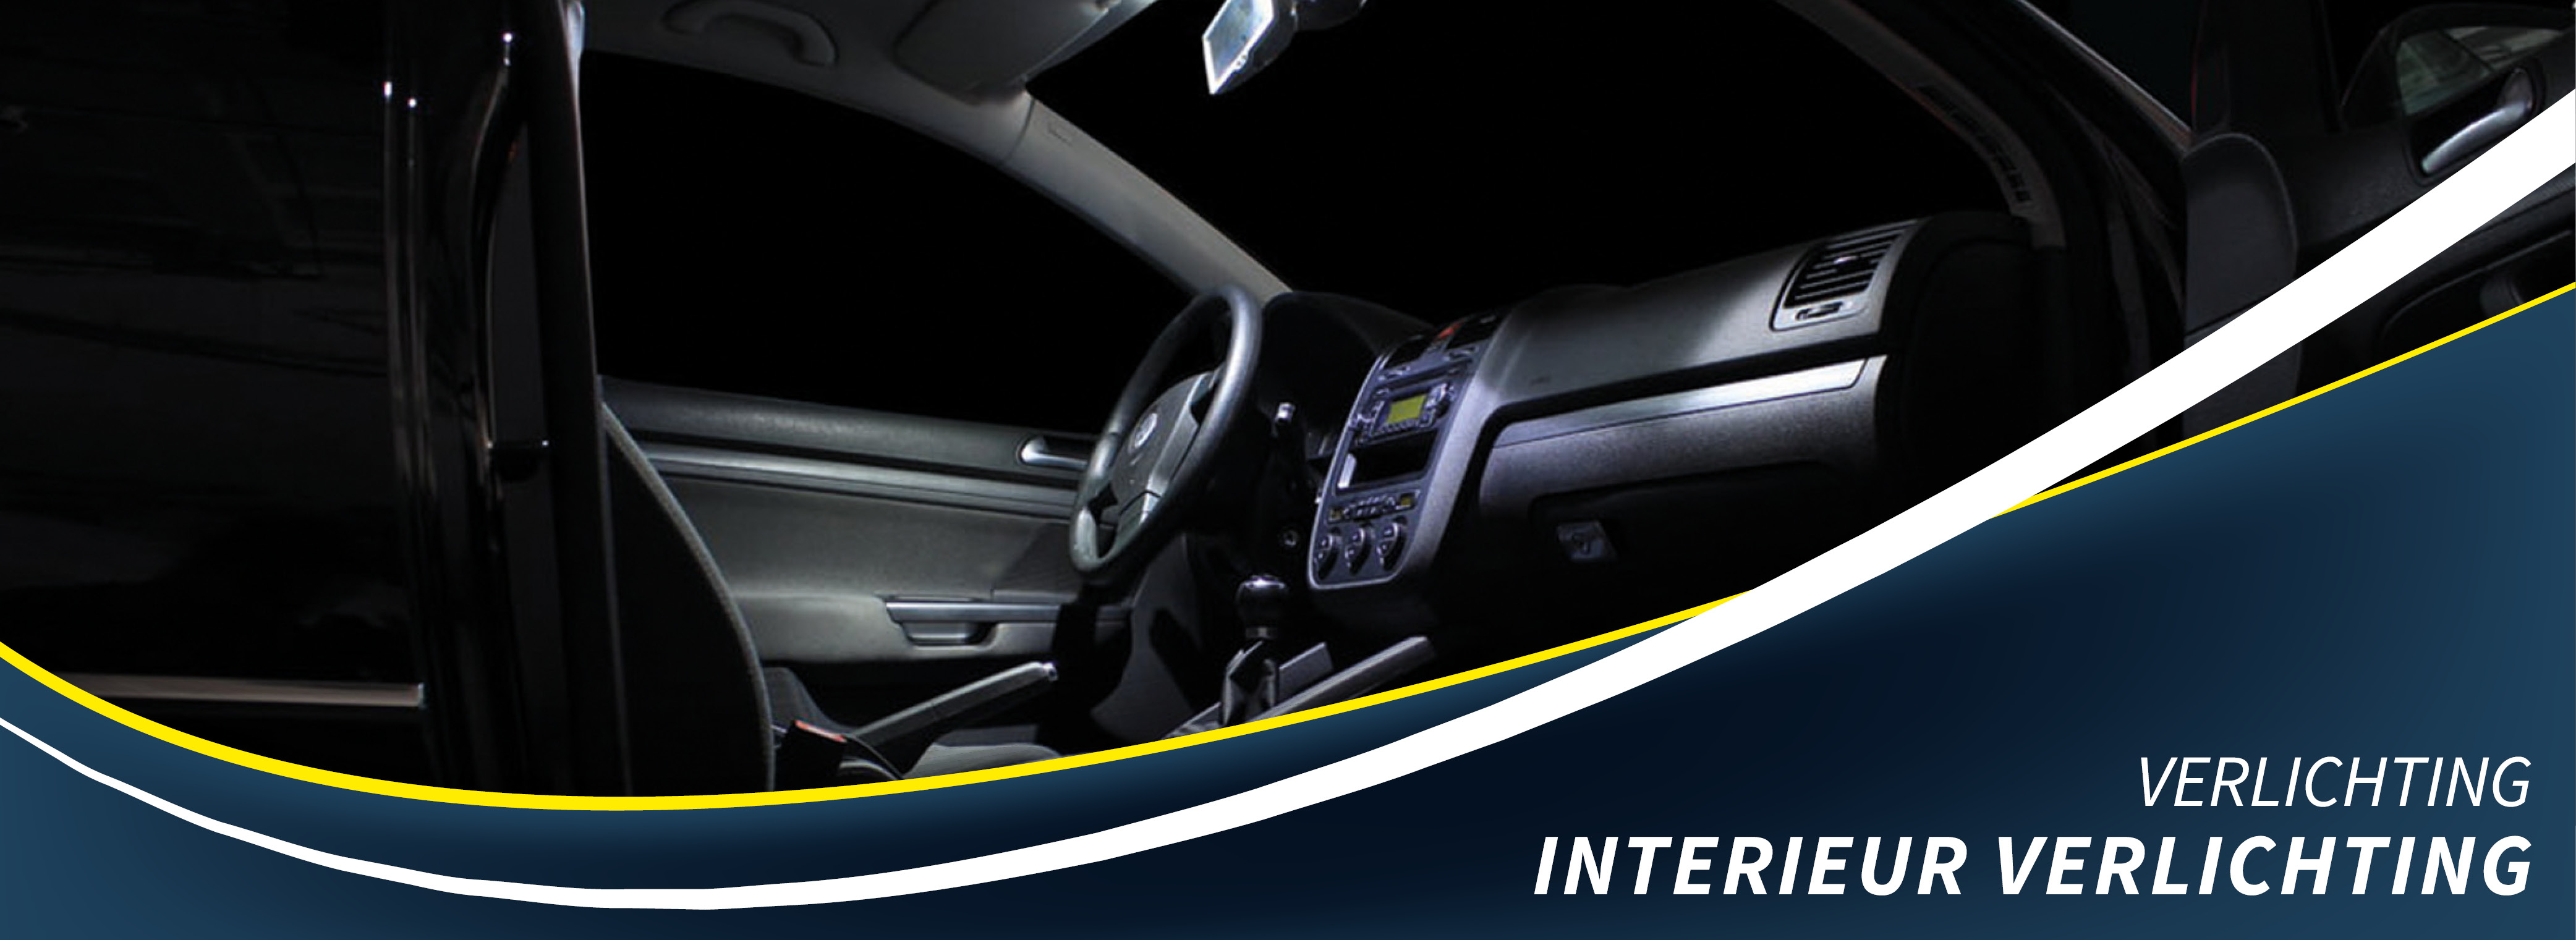 interieur verlichting archieven toma car parts